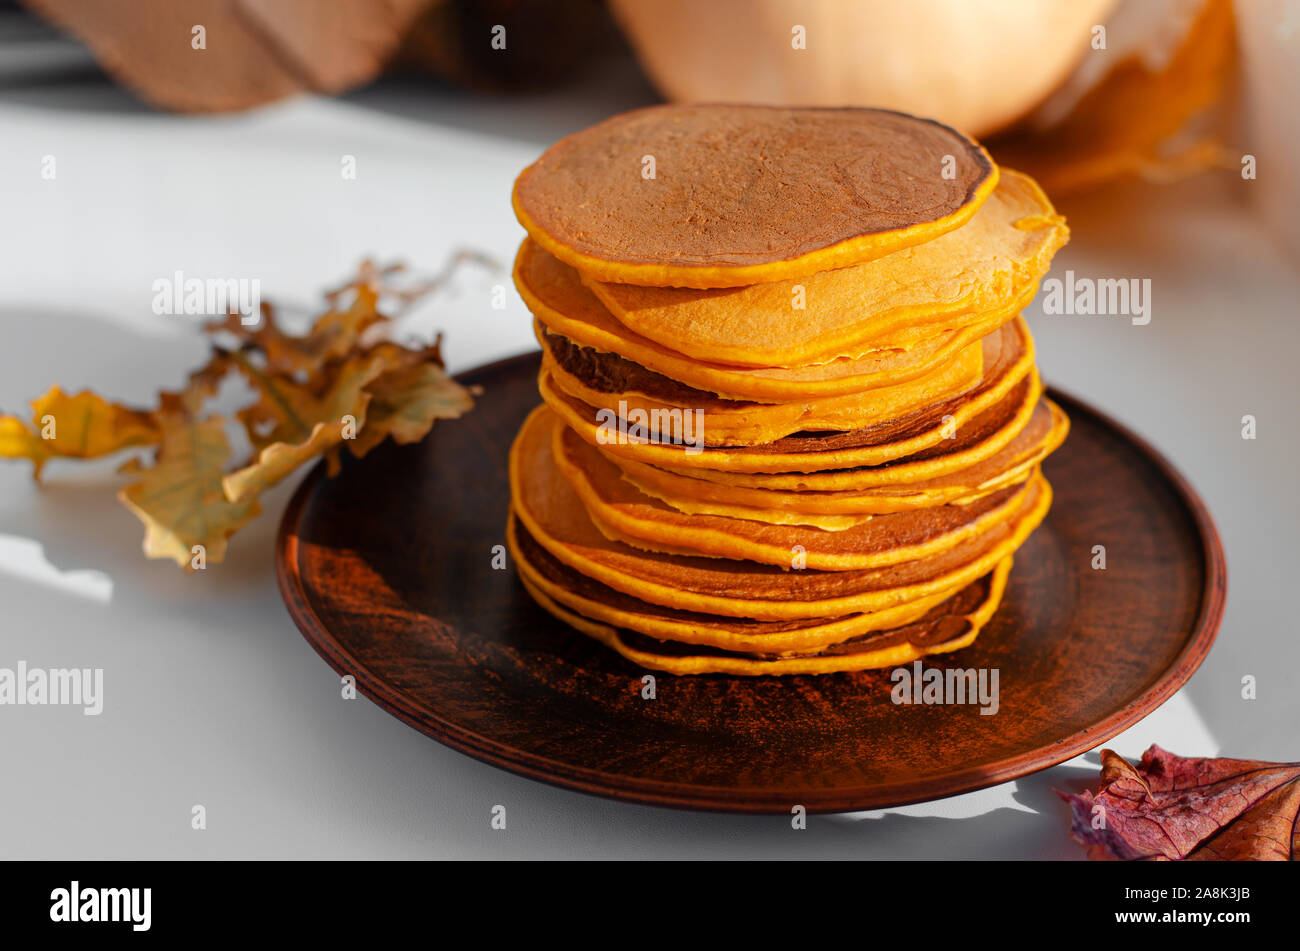 Stack of delicious pancakes on a brown plate. Autumn healthy food. Stock Photo